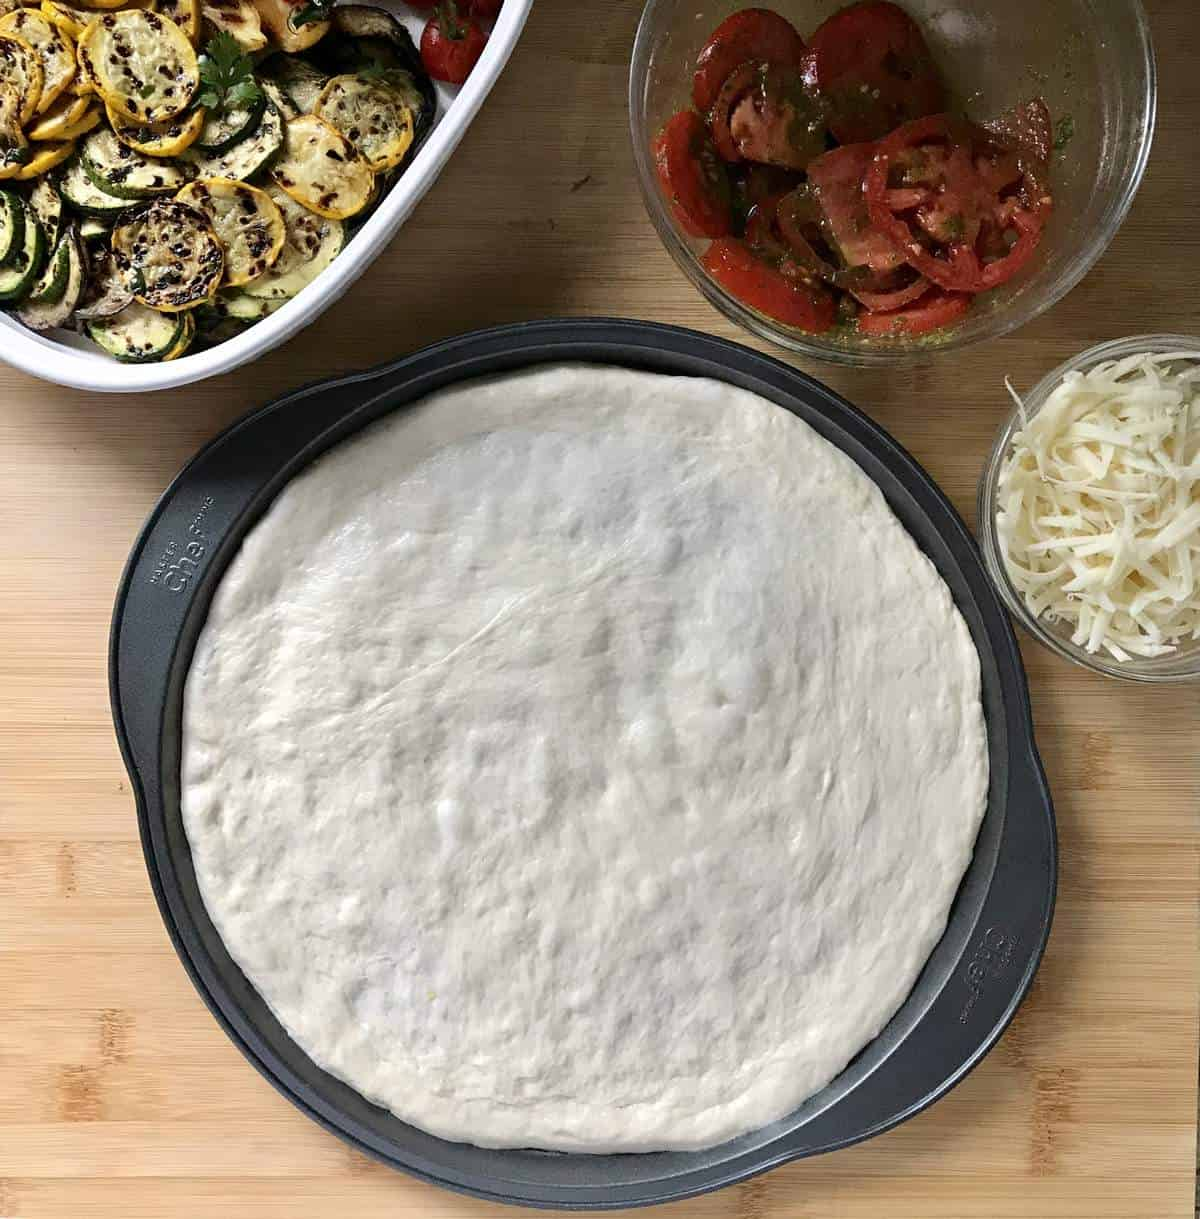 Stretched out pizza dough in a round pizza pan.